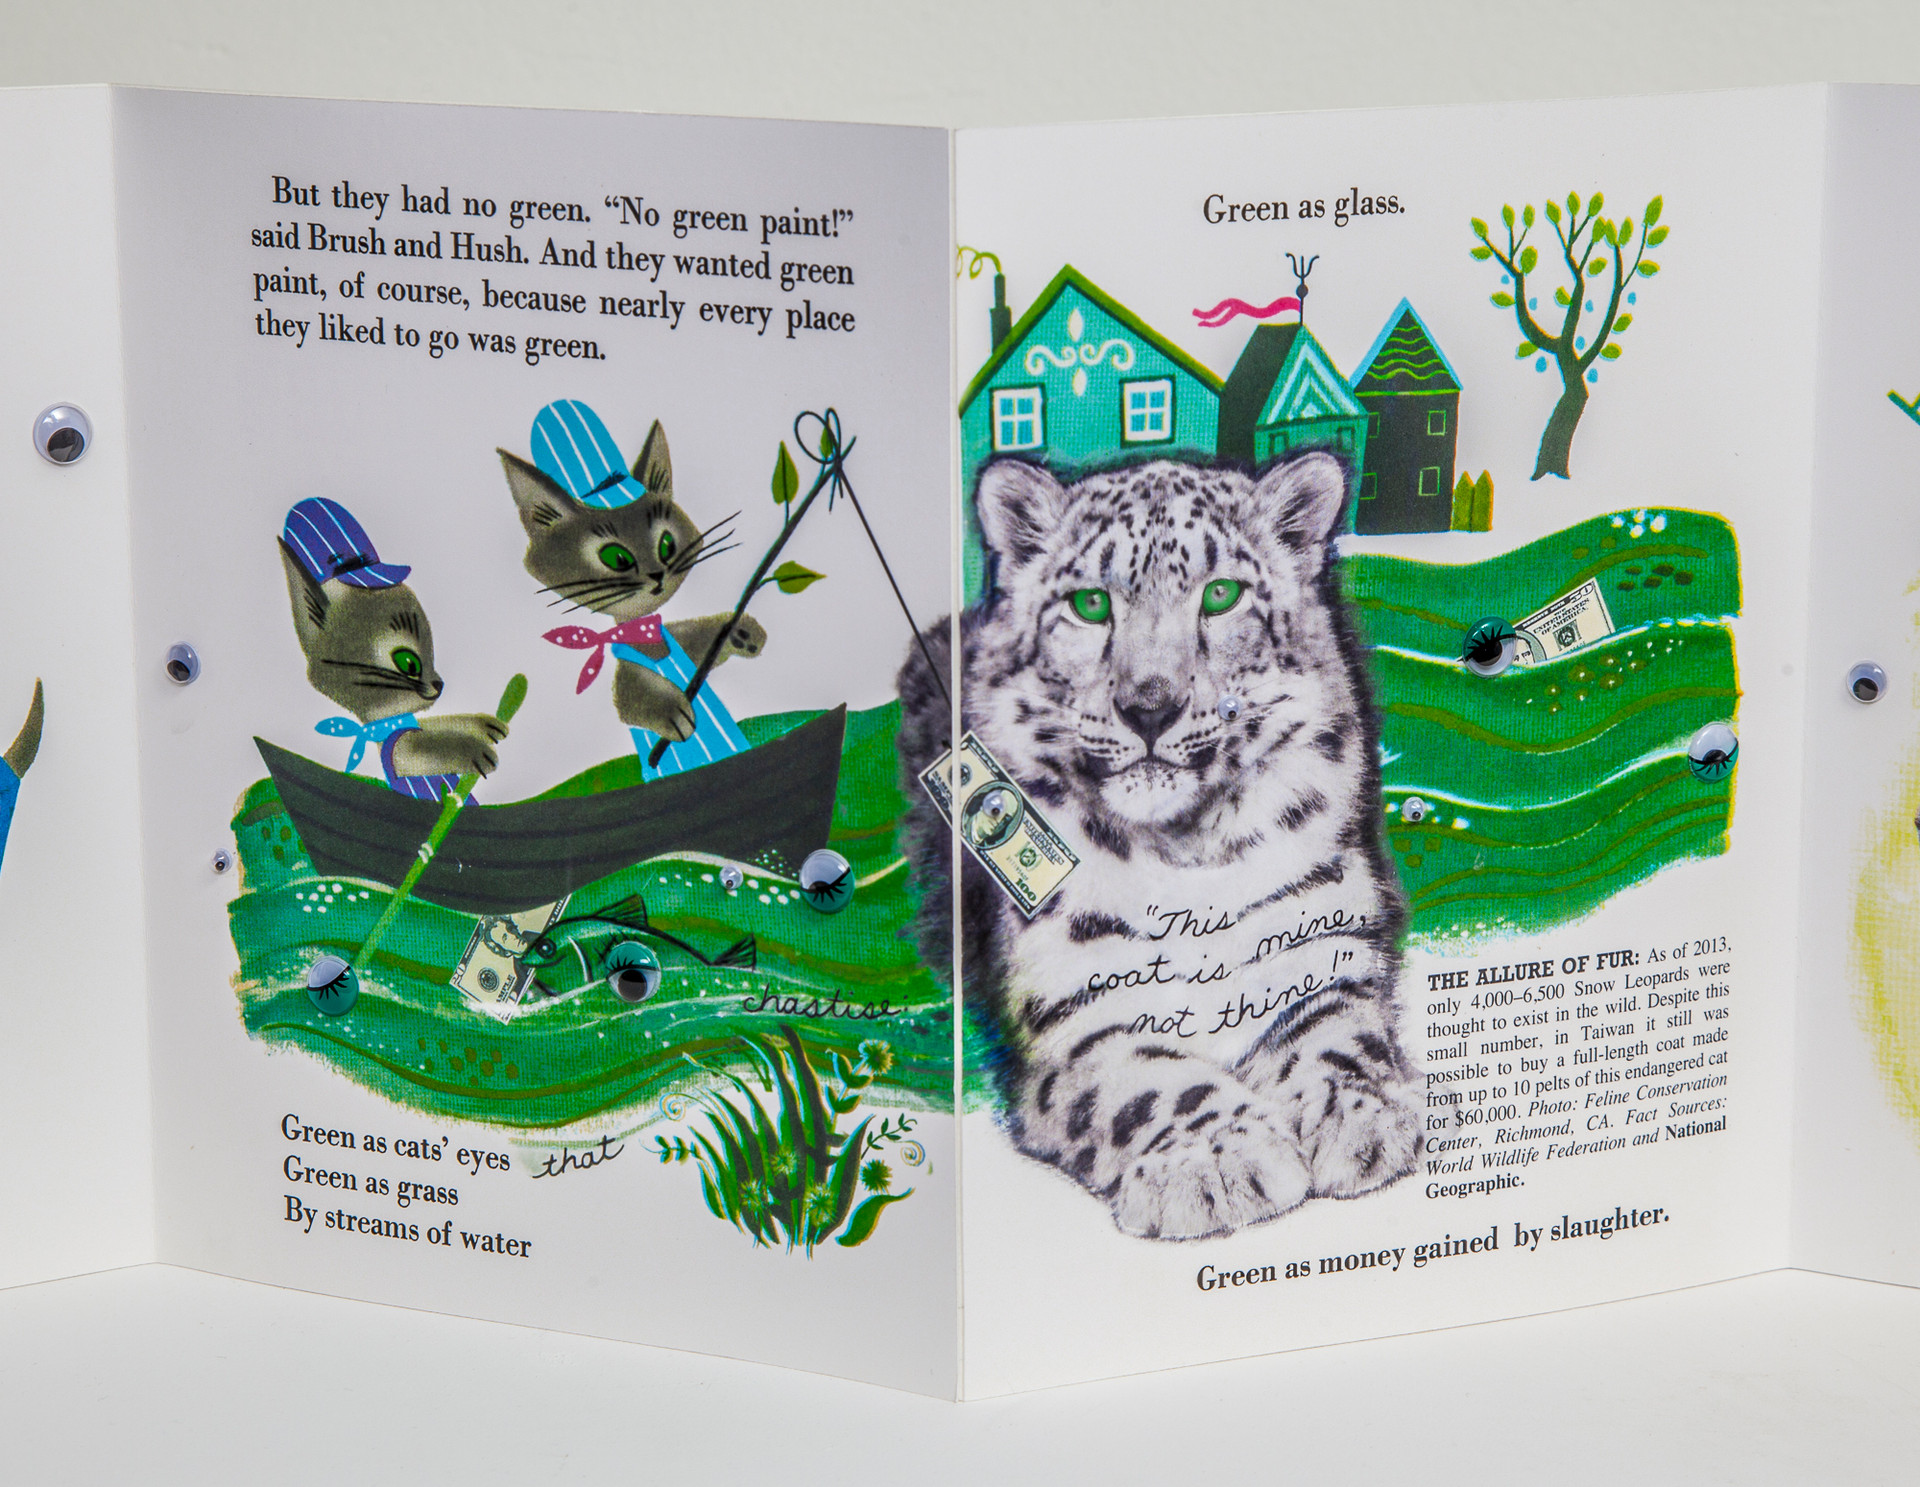 Two-page spread. Colors of google eyes transition from black/white to green to coordinate with illustration. Original rhyme modified to include subject of snow leopard slaughter.